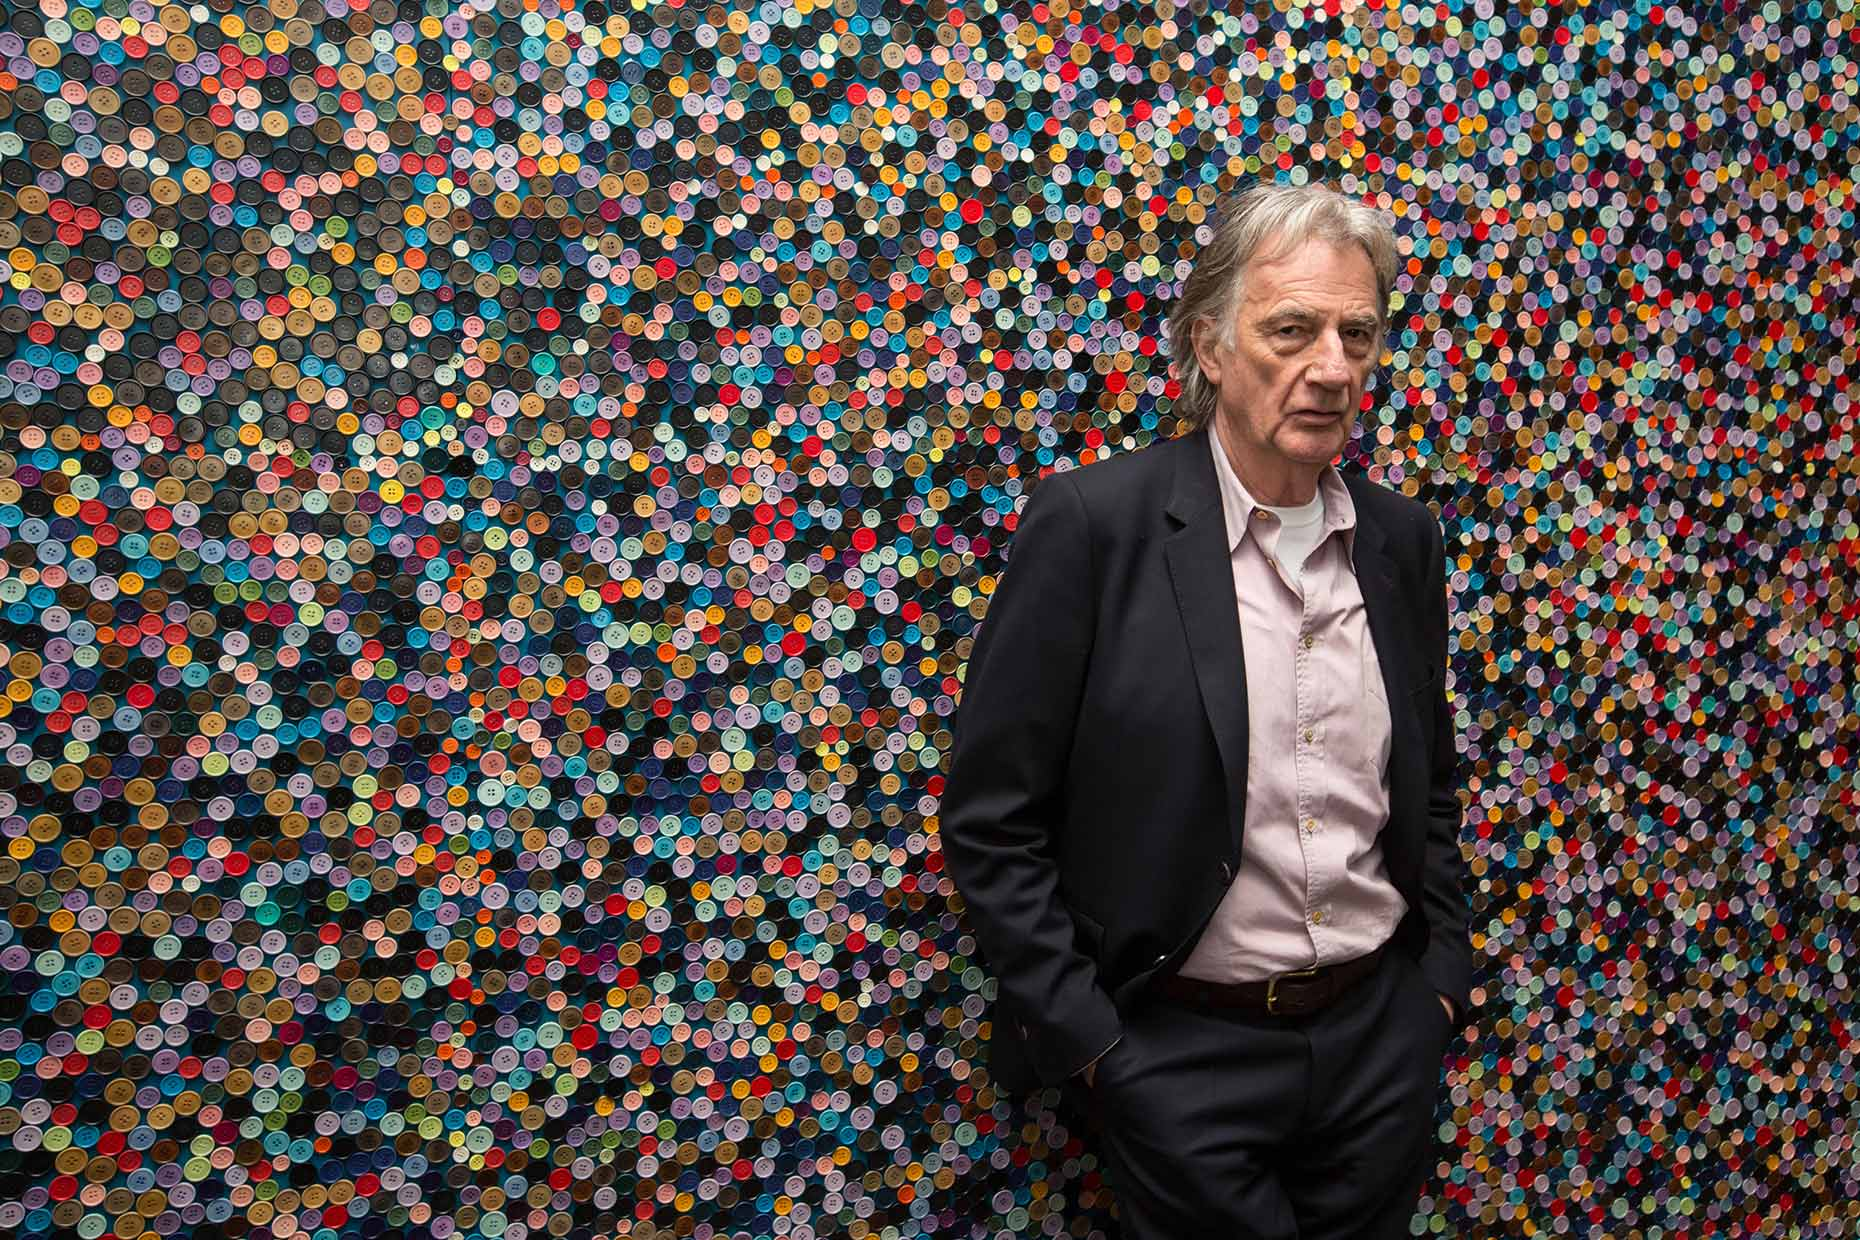 Paul Smith, fashion designer, portrait by Scottish photographer Jeremy Sutton-Hibbert.